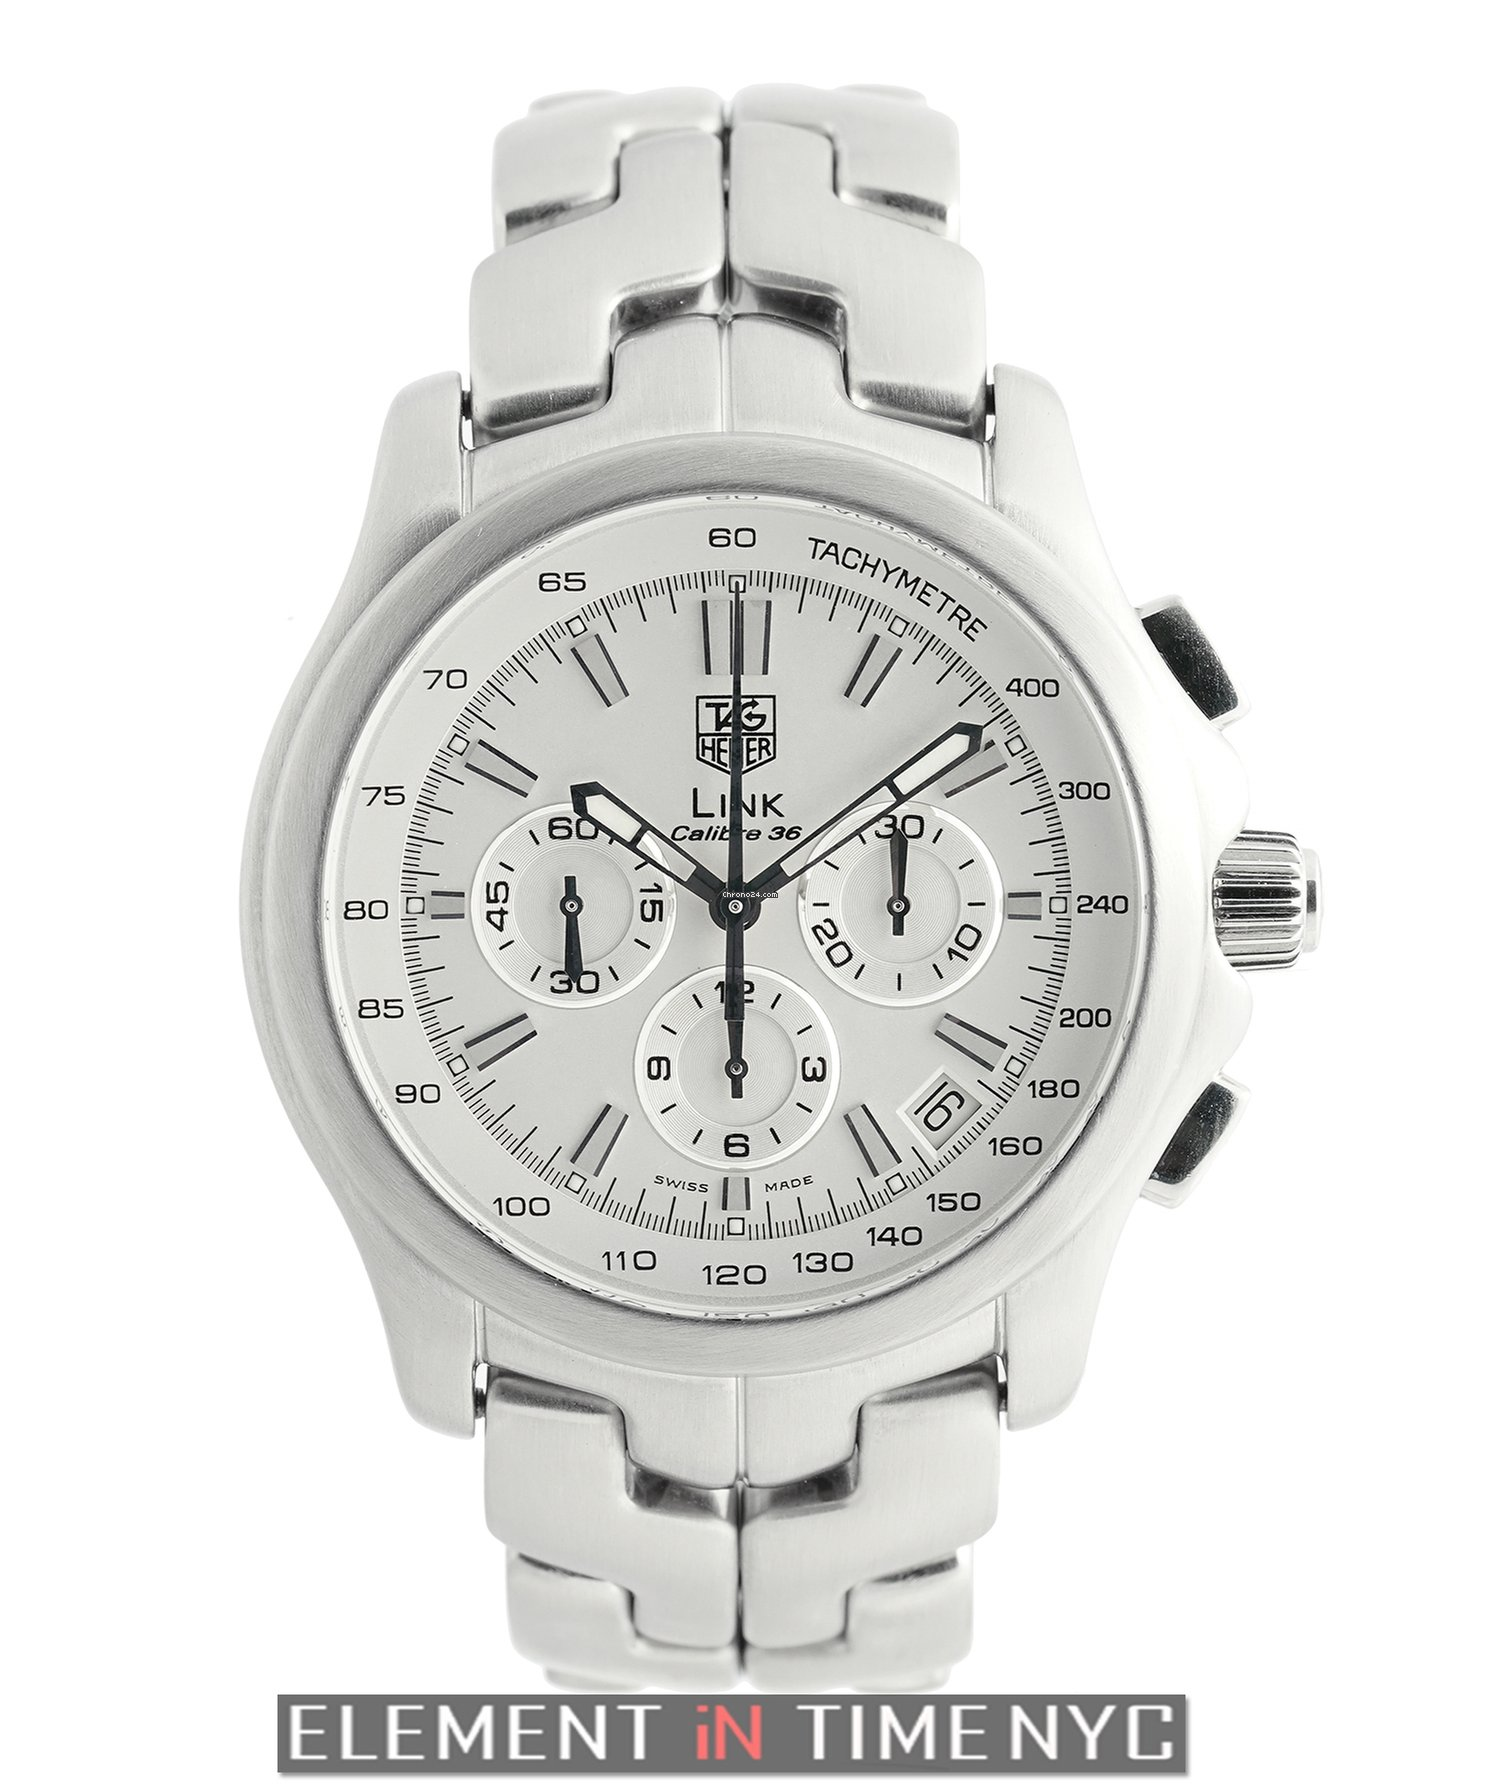 9f2dada1df2 TAG Heuer Link Caliber 36 El Primero Chronograph Stainless... for $3,725  for sale from a Trusted Seller on Chrono24